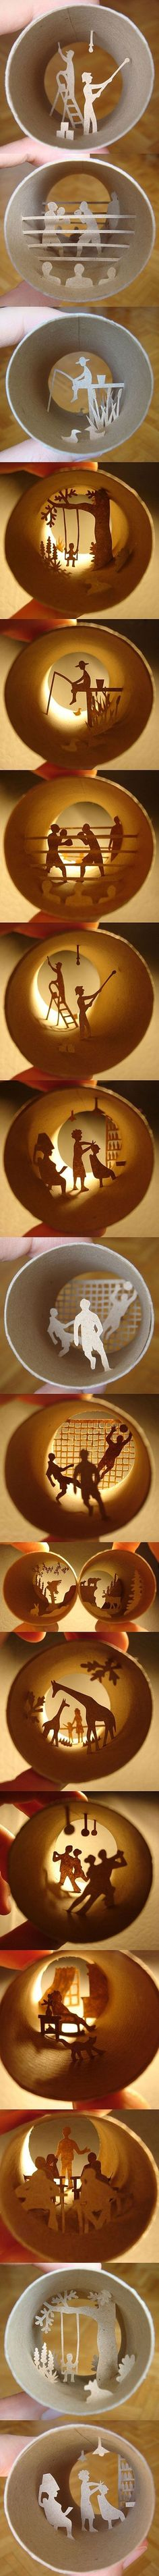 Toilet paper roll art !